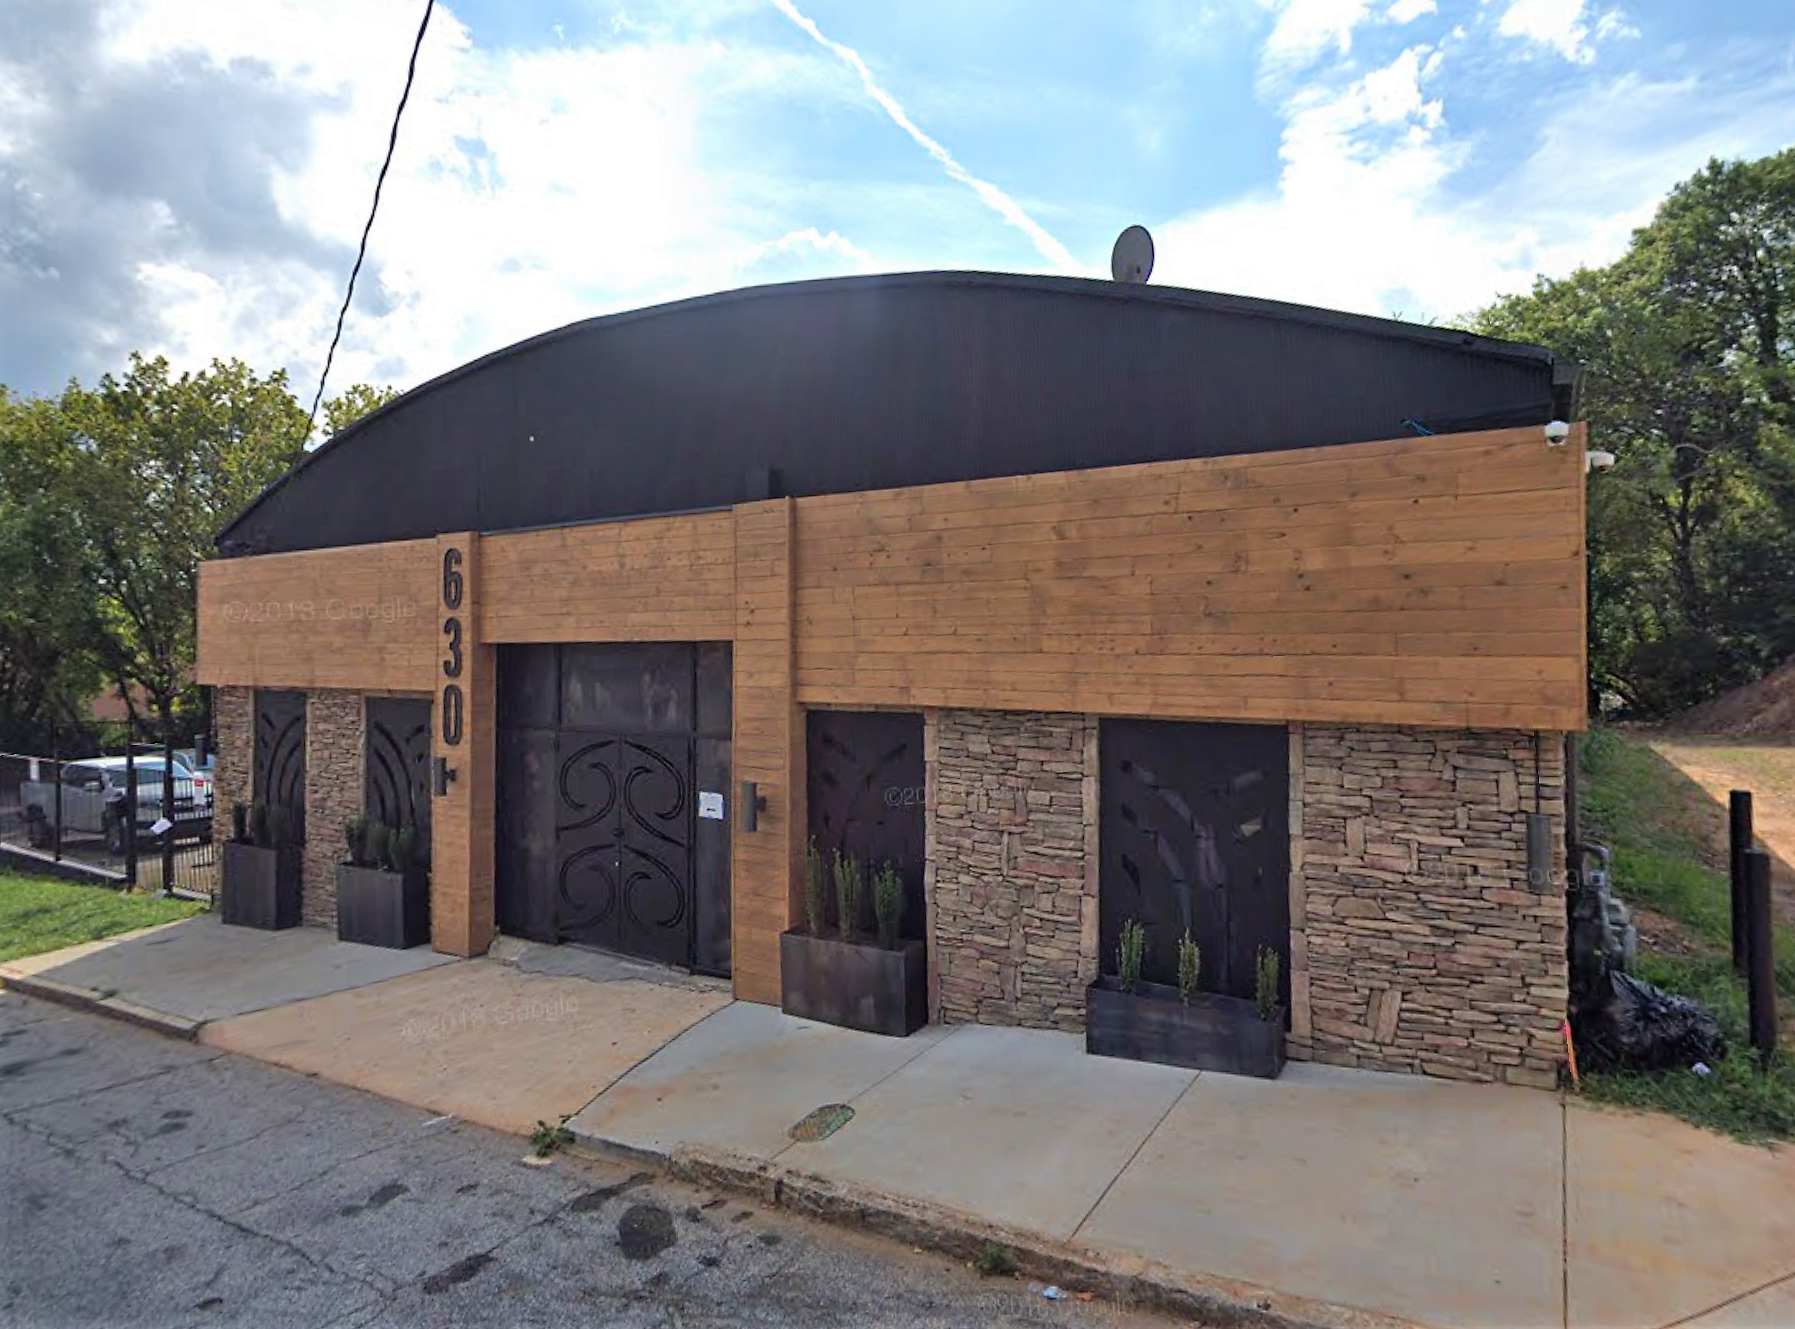 a picture of the trap music museum's exterior